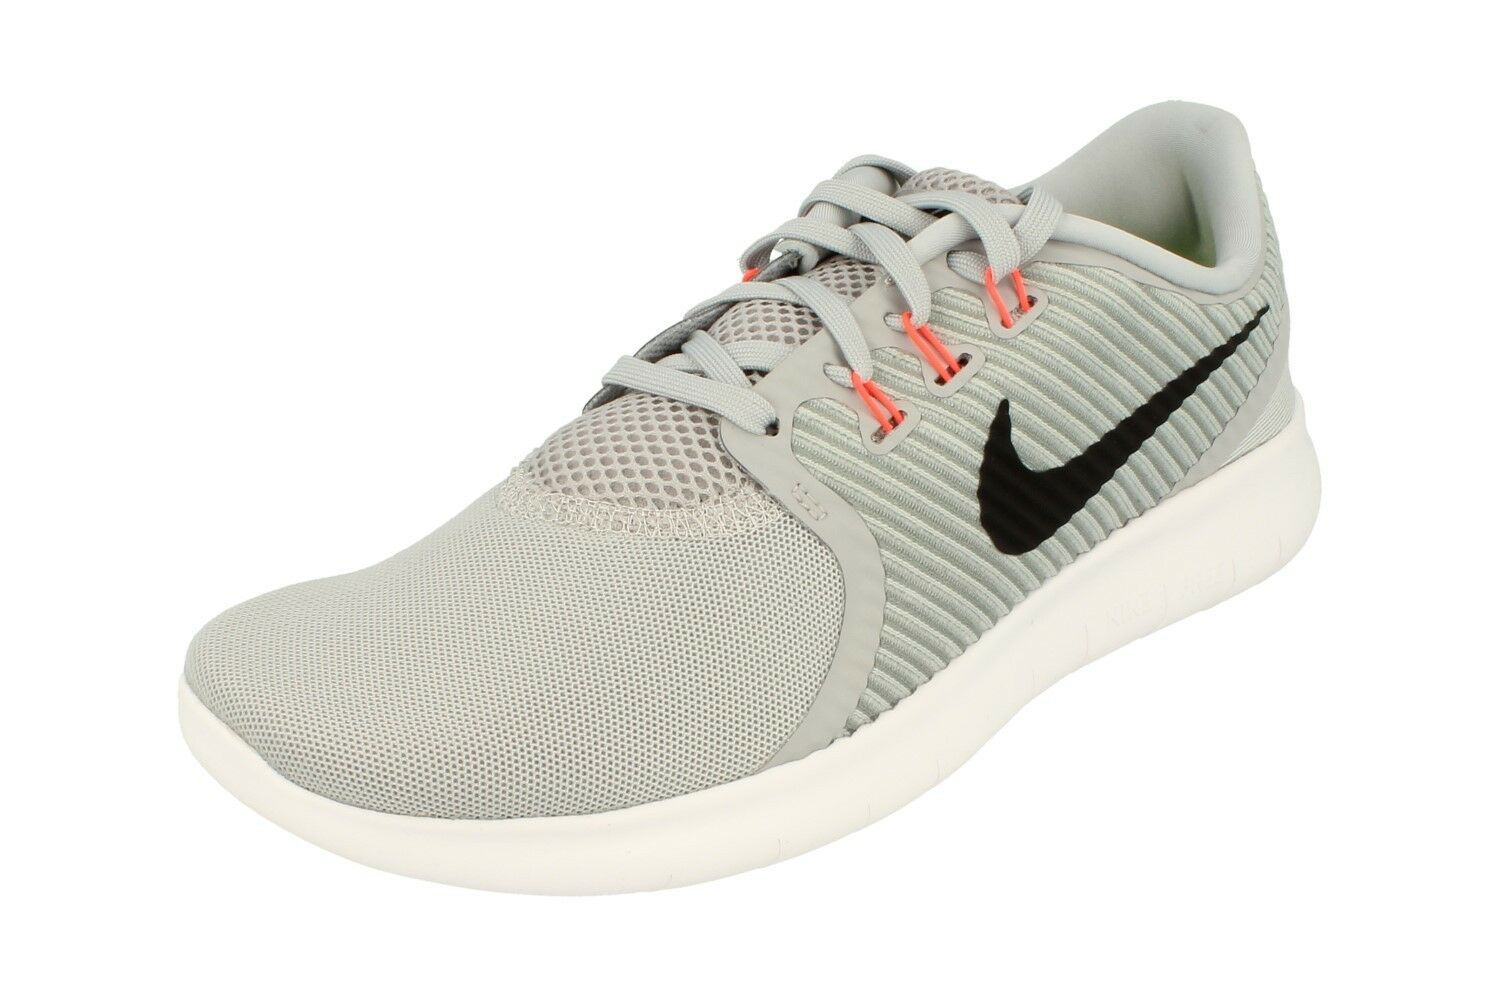 Nike Free RN CMTR Mens Running Trainers 831510 002 Sneakers Shoes